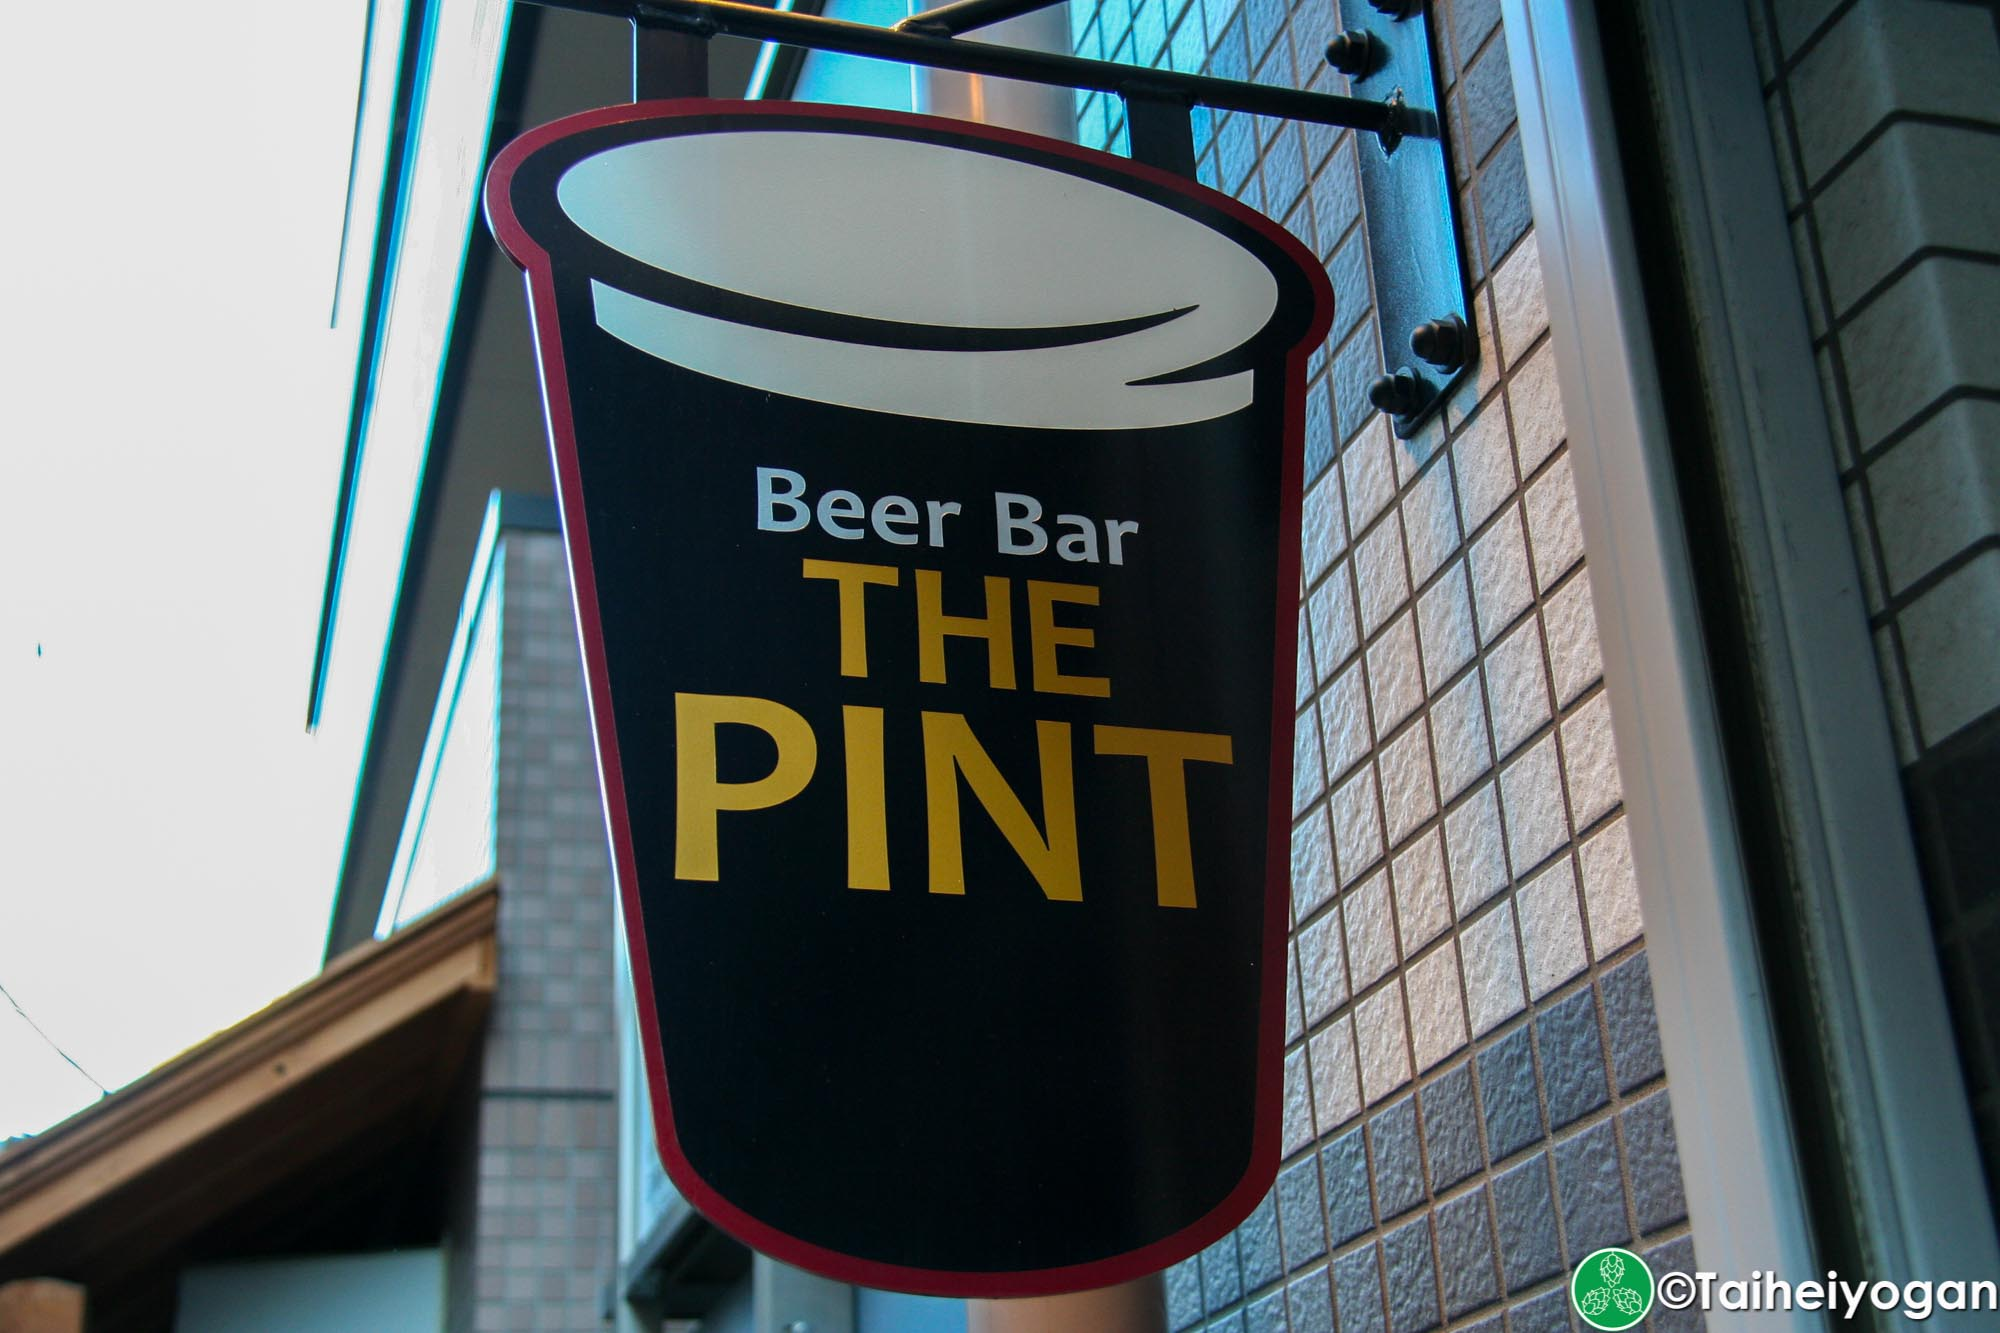 Beer Bar the Pint - Sign